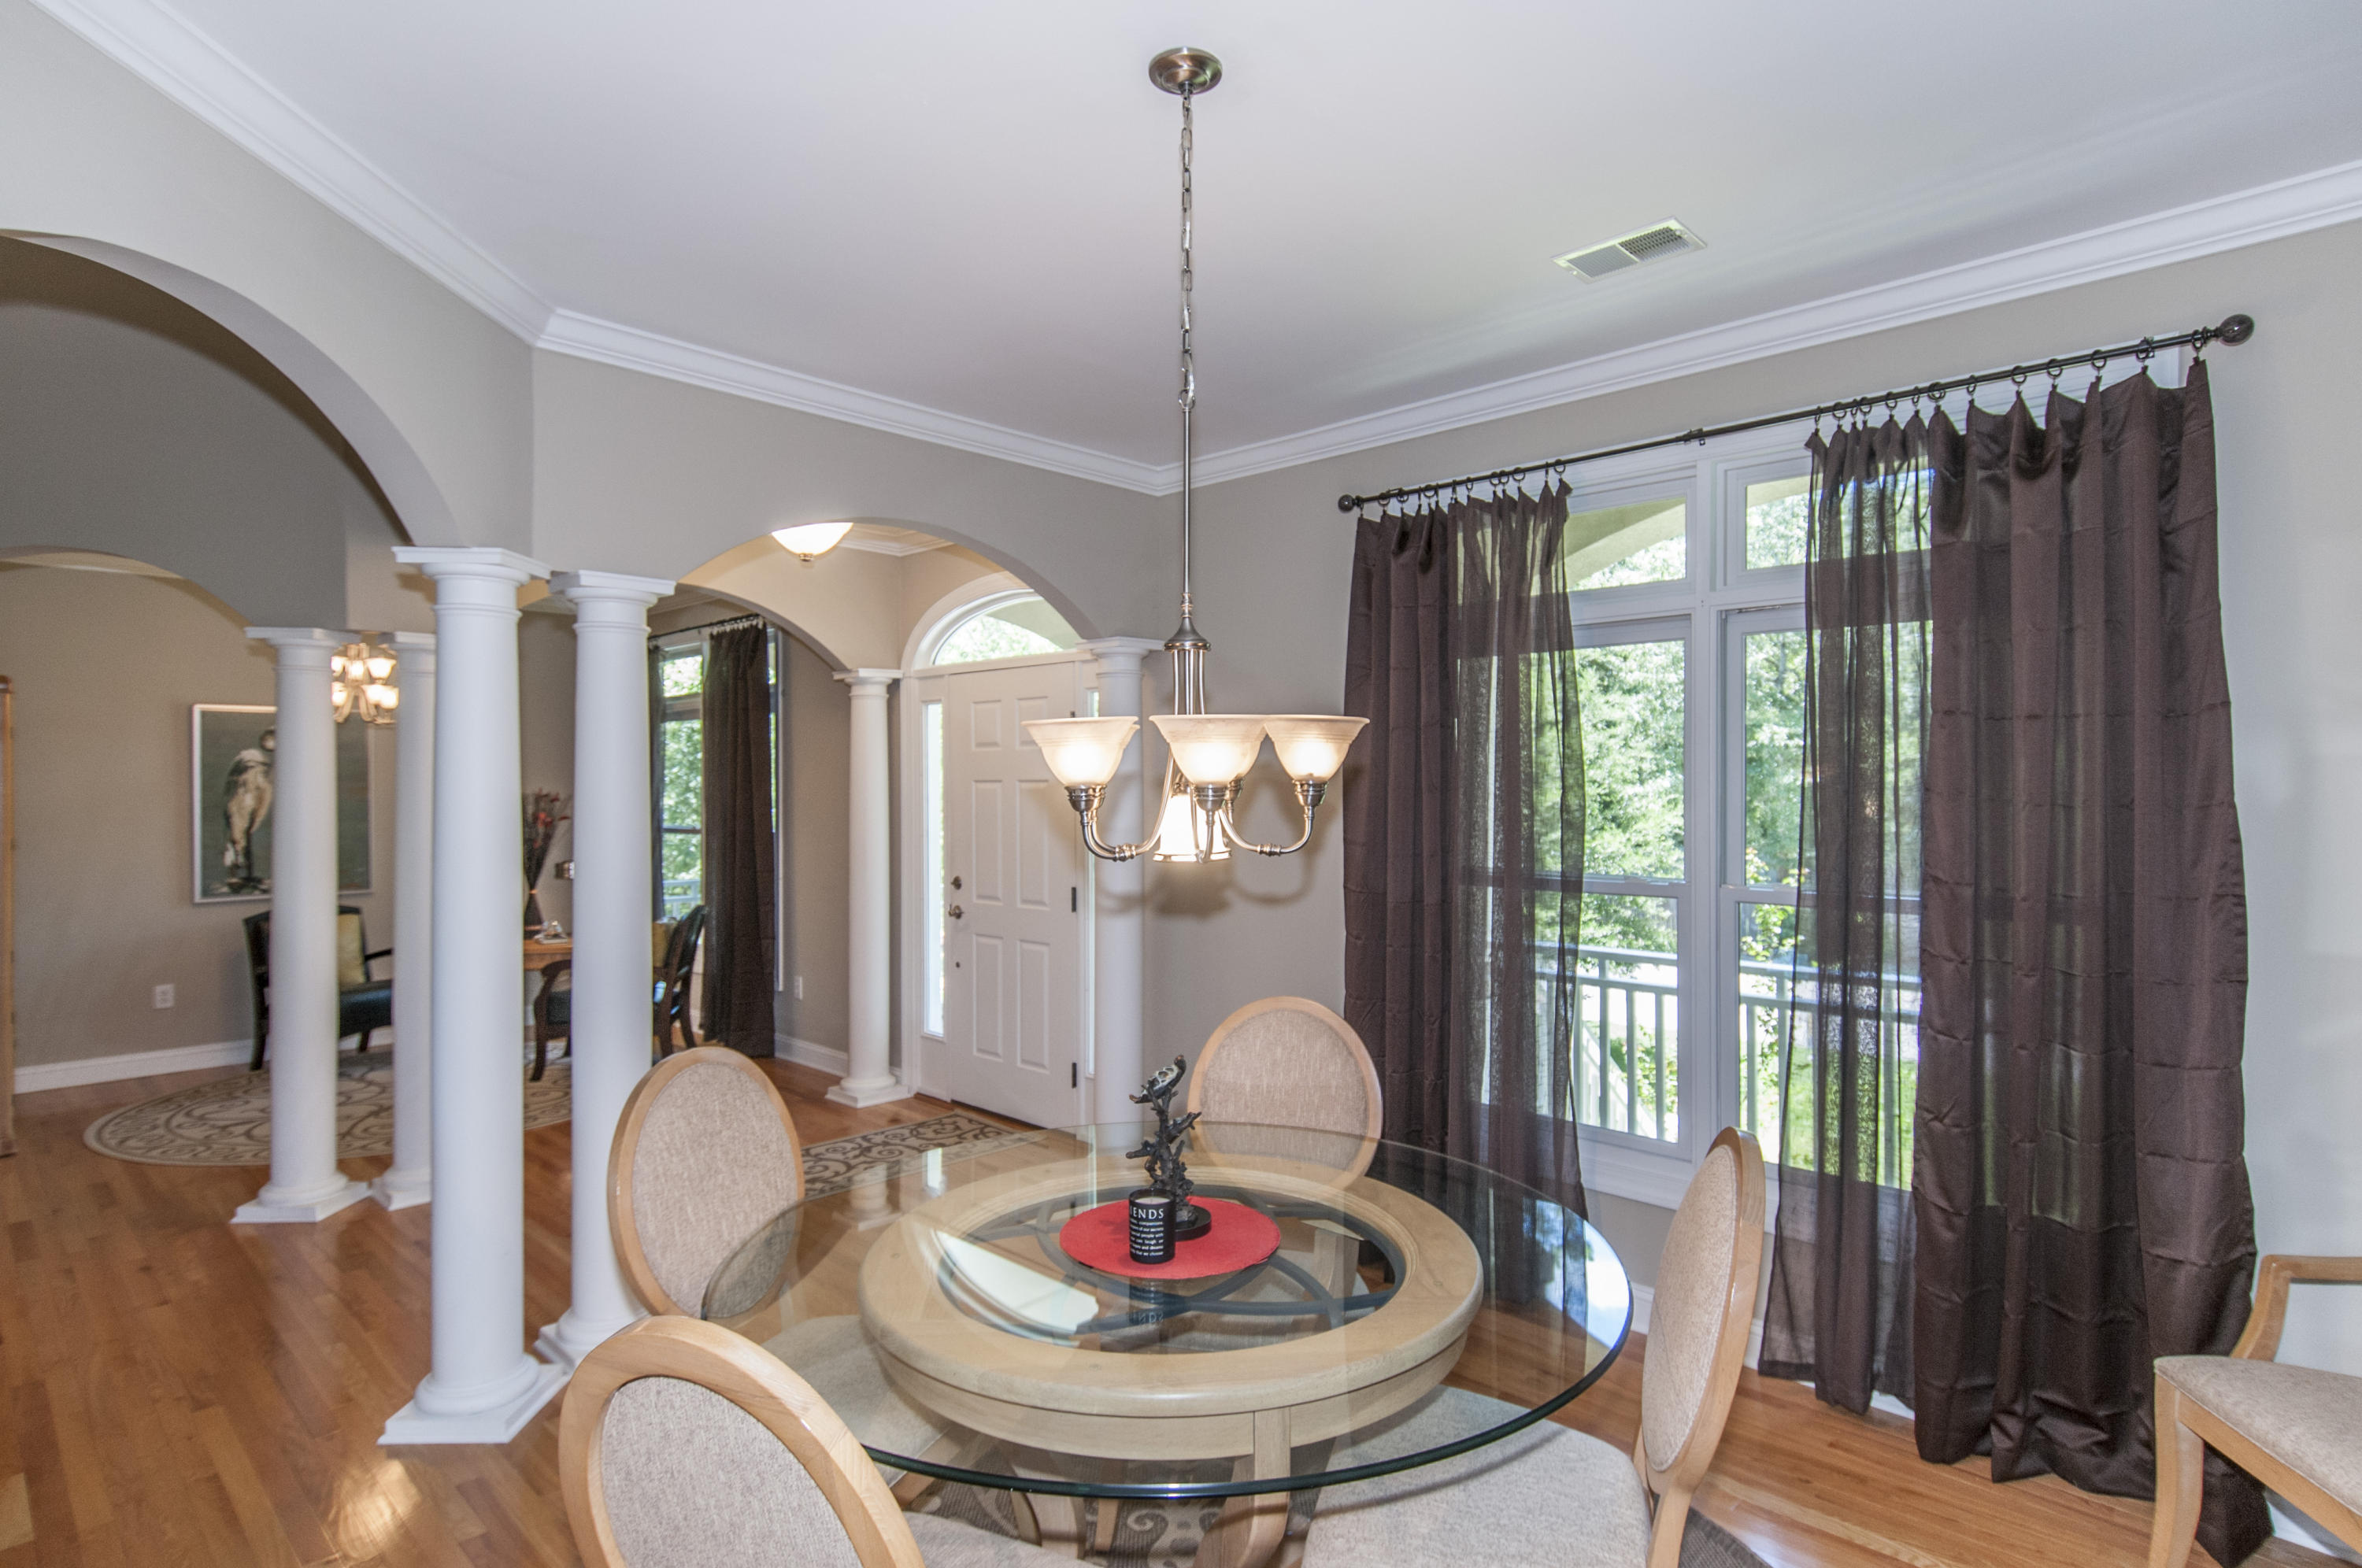 The Marshes at Rushland Landing Homes For Sale - 3022 Rushland Mews, Johns Island, SC - 5